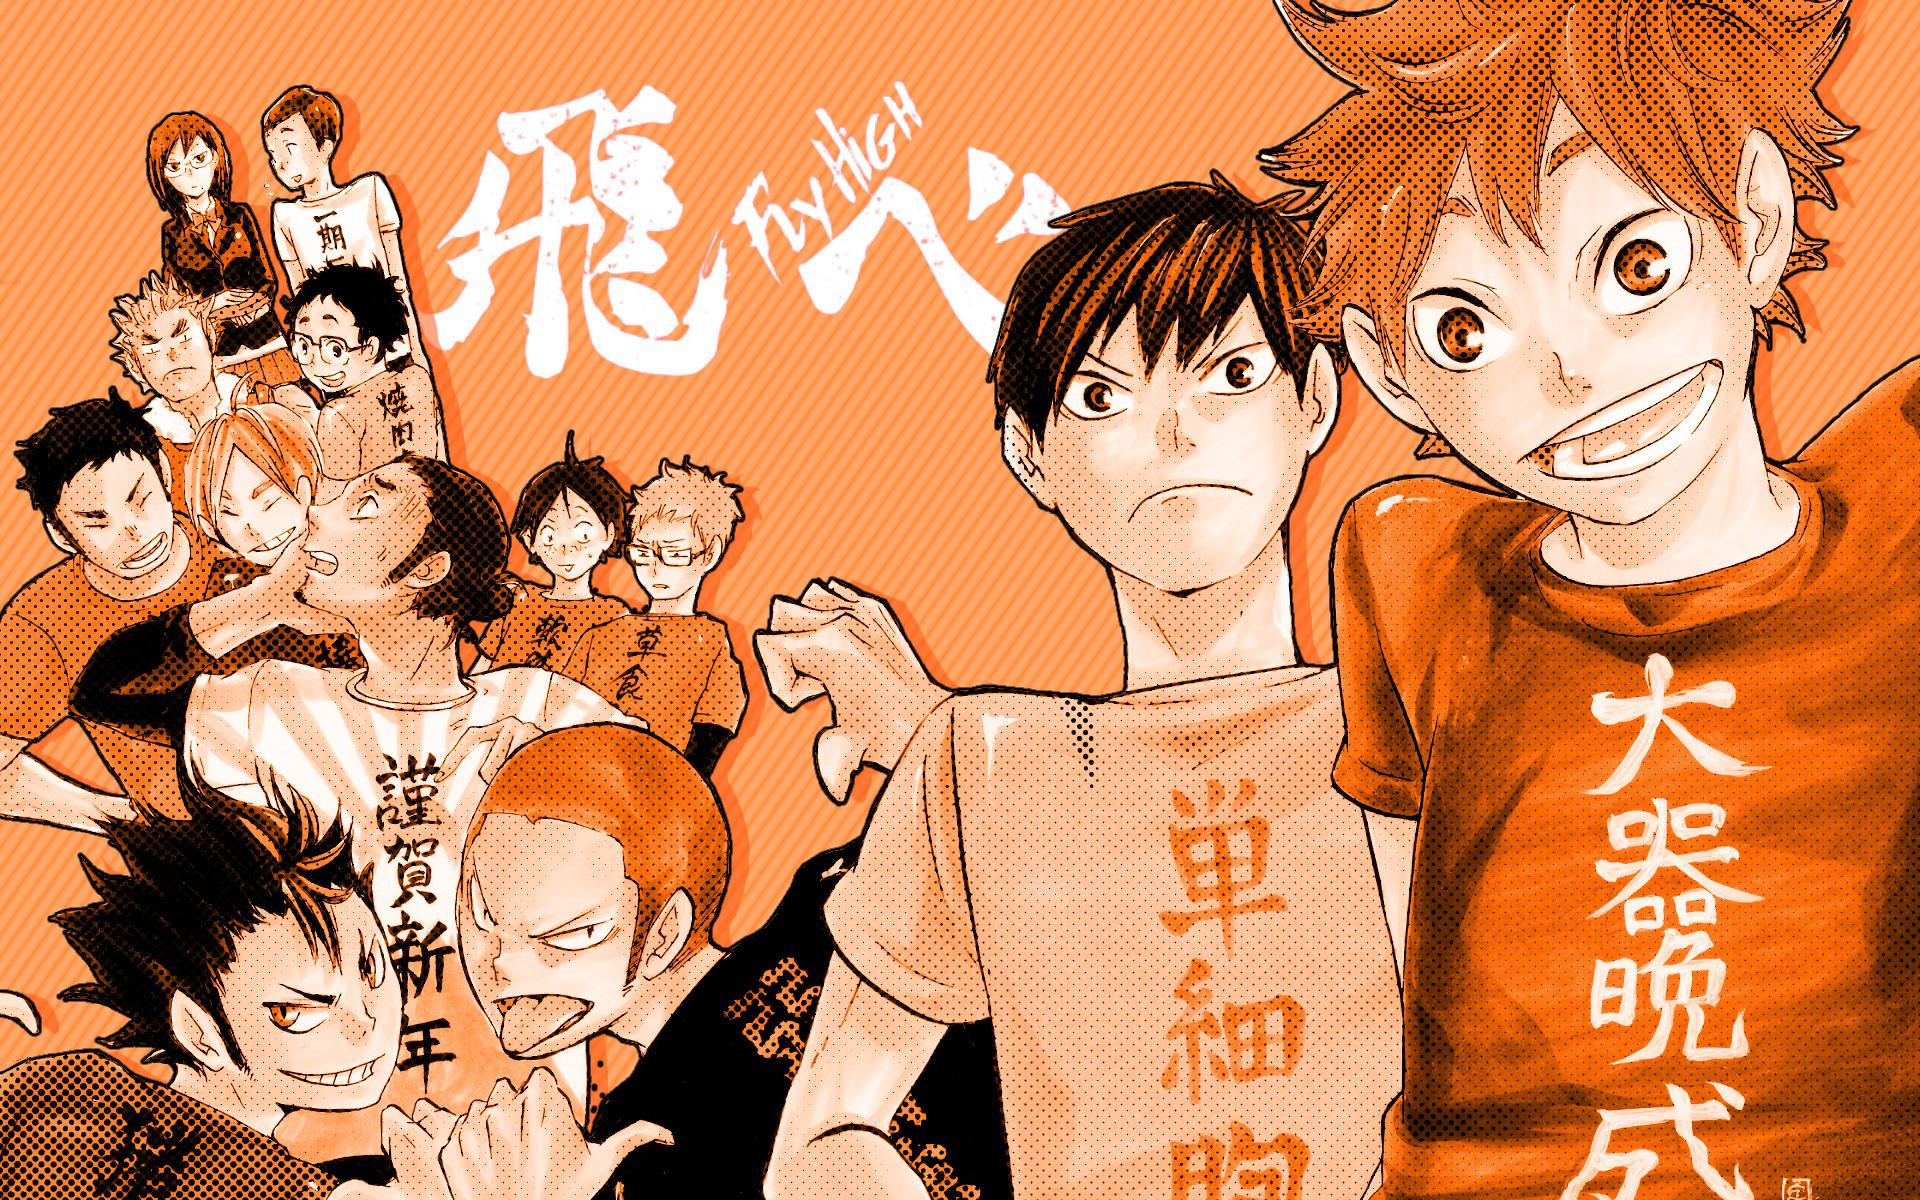 Haikyuu Chapter 402 Release Date Spoilers Manga Series Ends With The Final Chapter Blocktoro Although short tall, he becomes motivated. haikyuu chapter 402 release date